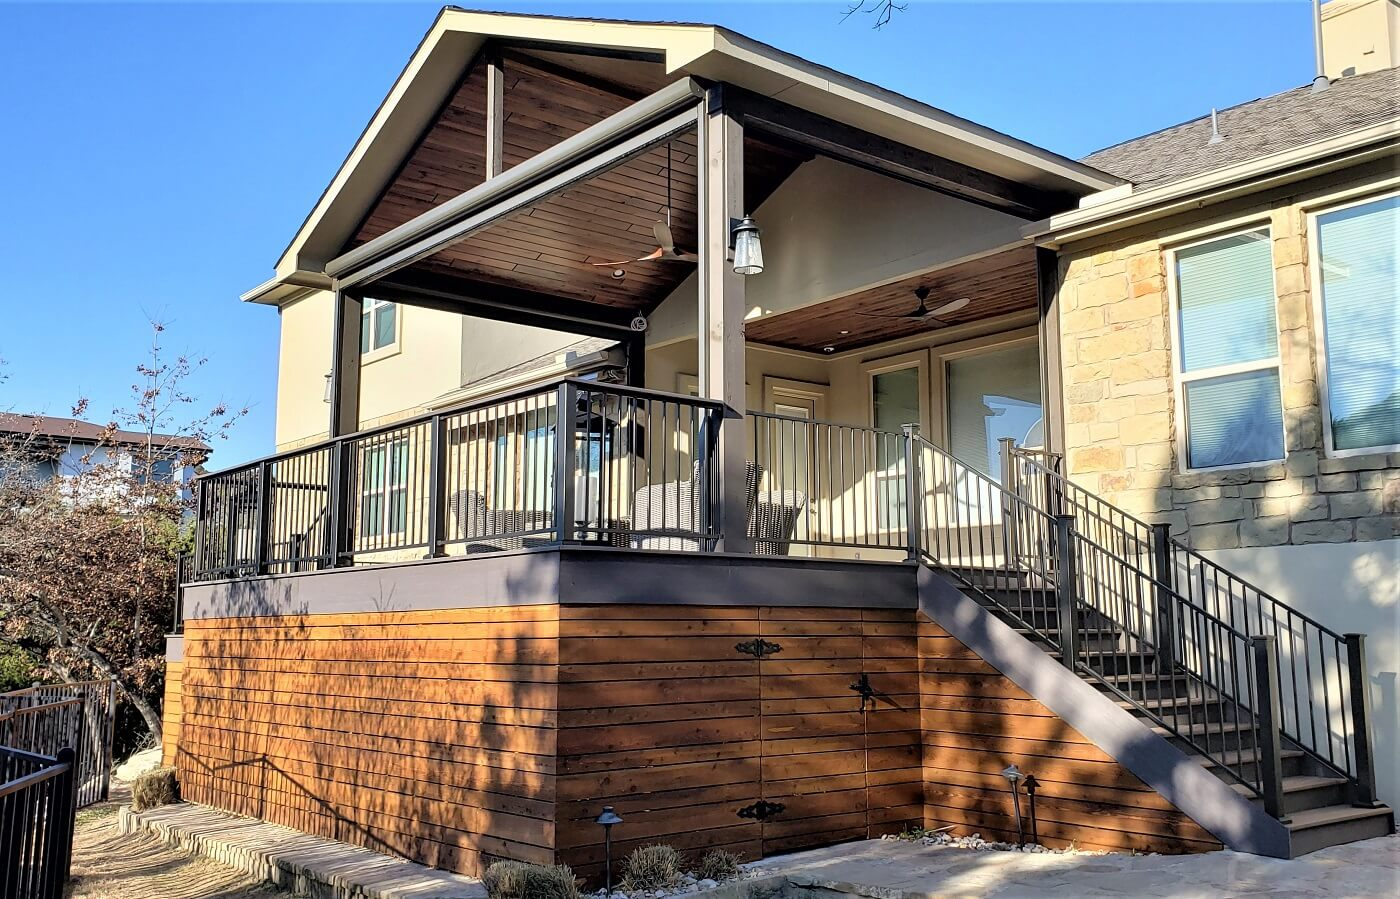 Side view of covered porch and deck with railing